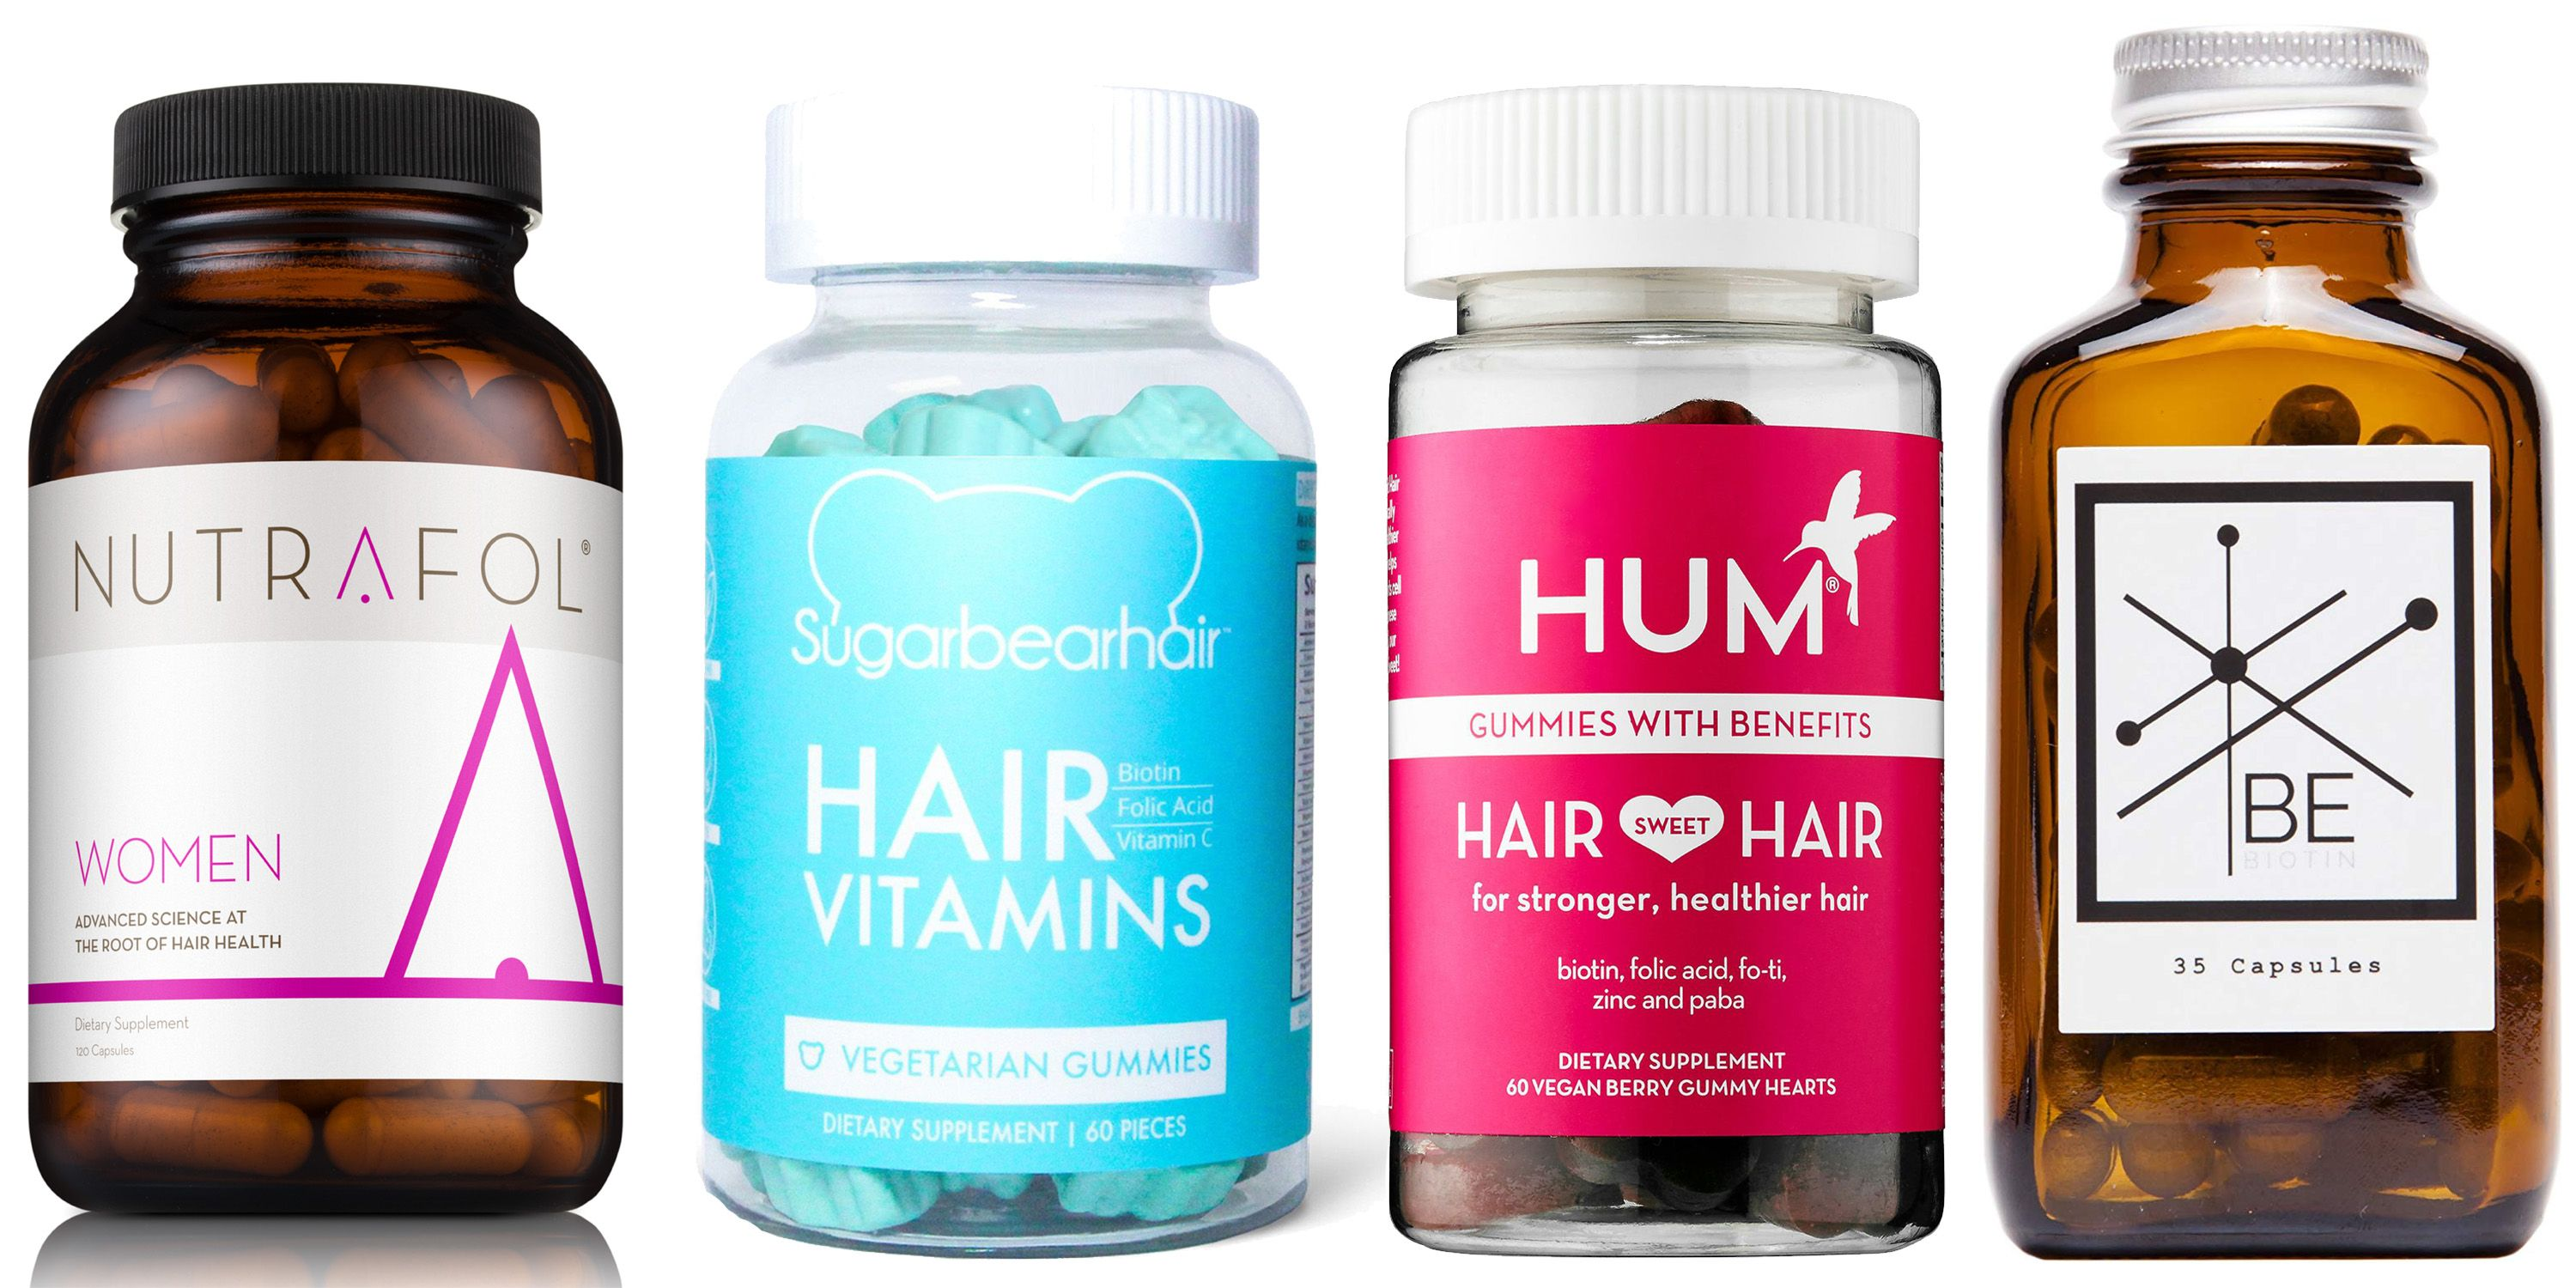 20 best vitamins for hair 2018 vitamins to make hair grow.